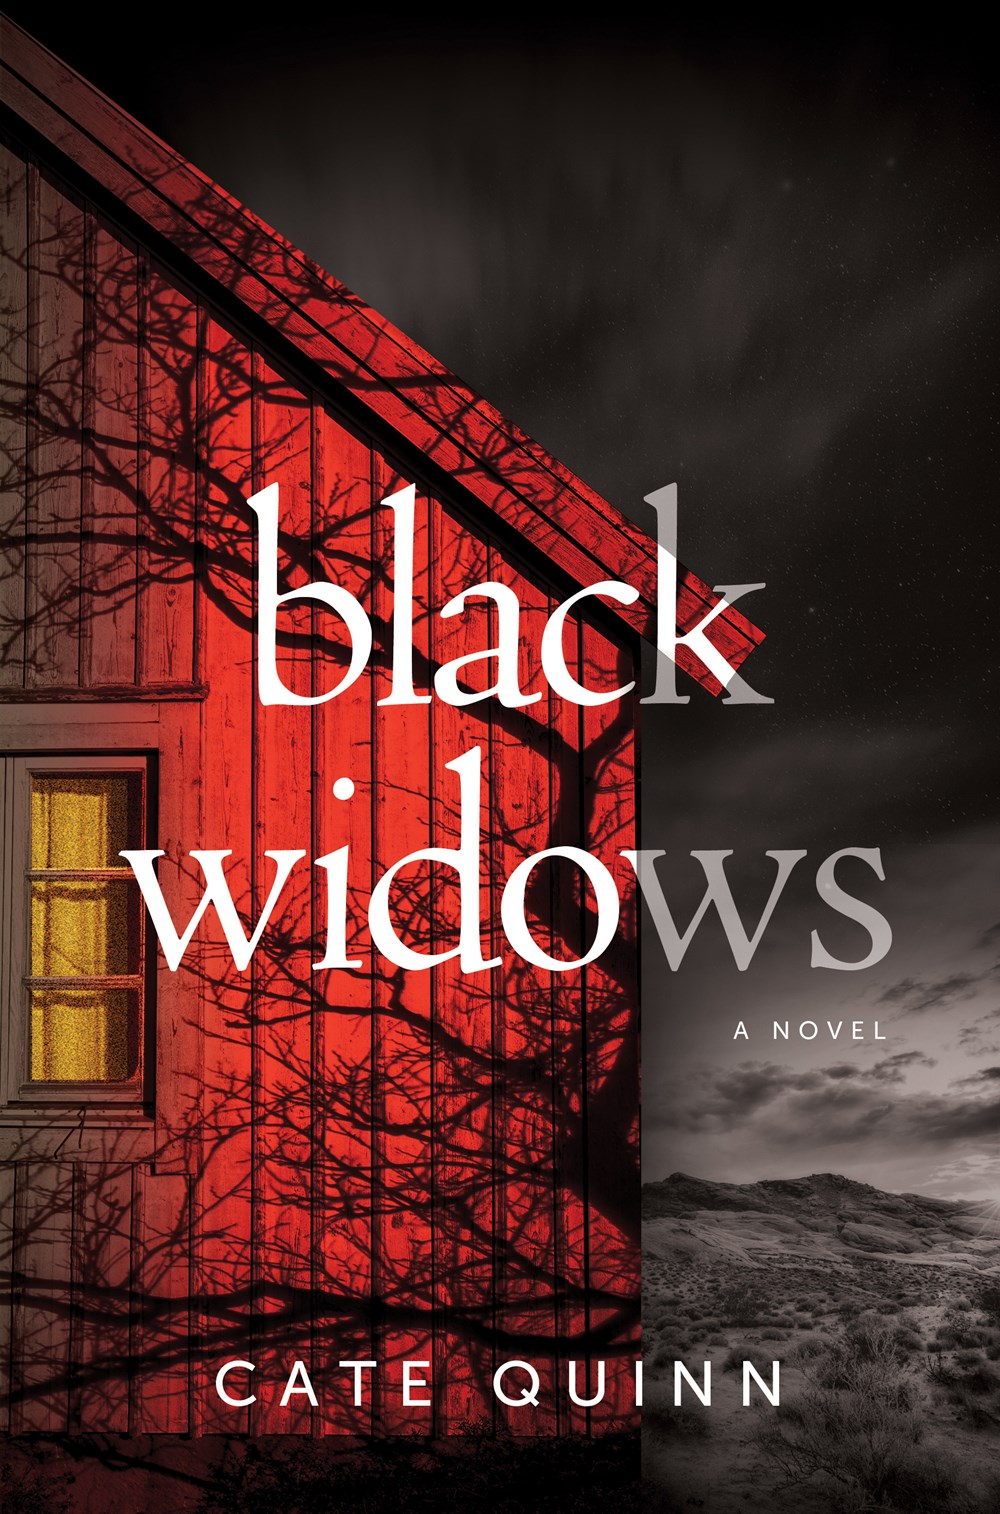 Black Widows by Cate Quinn